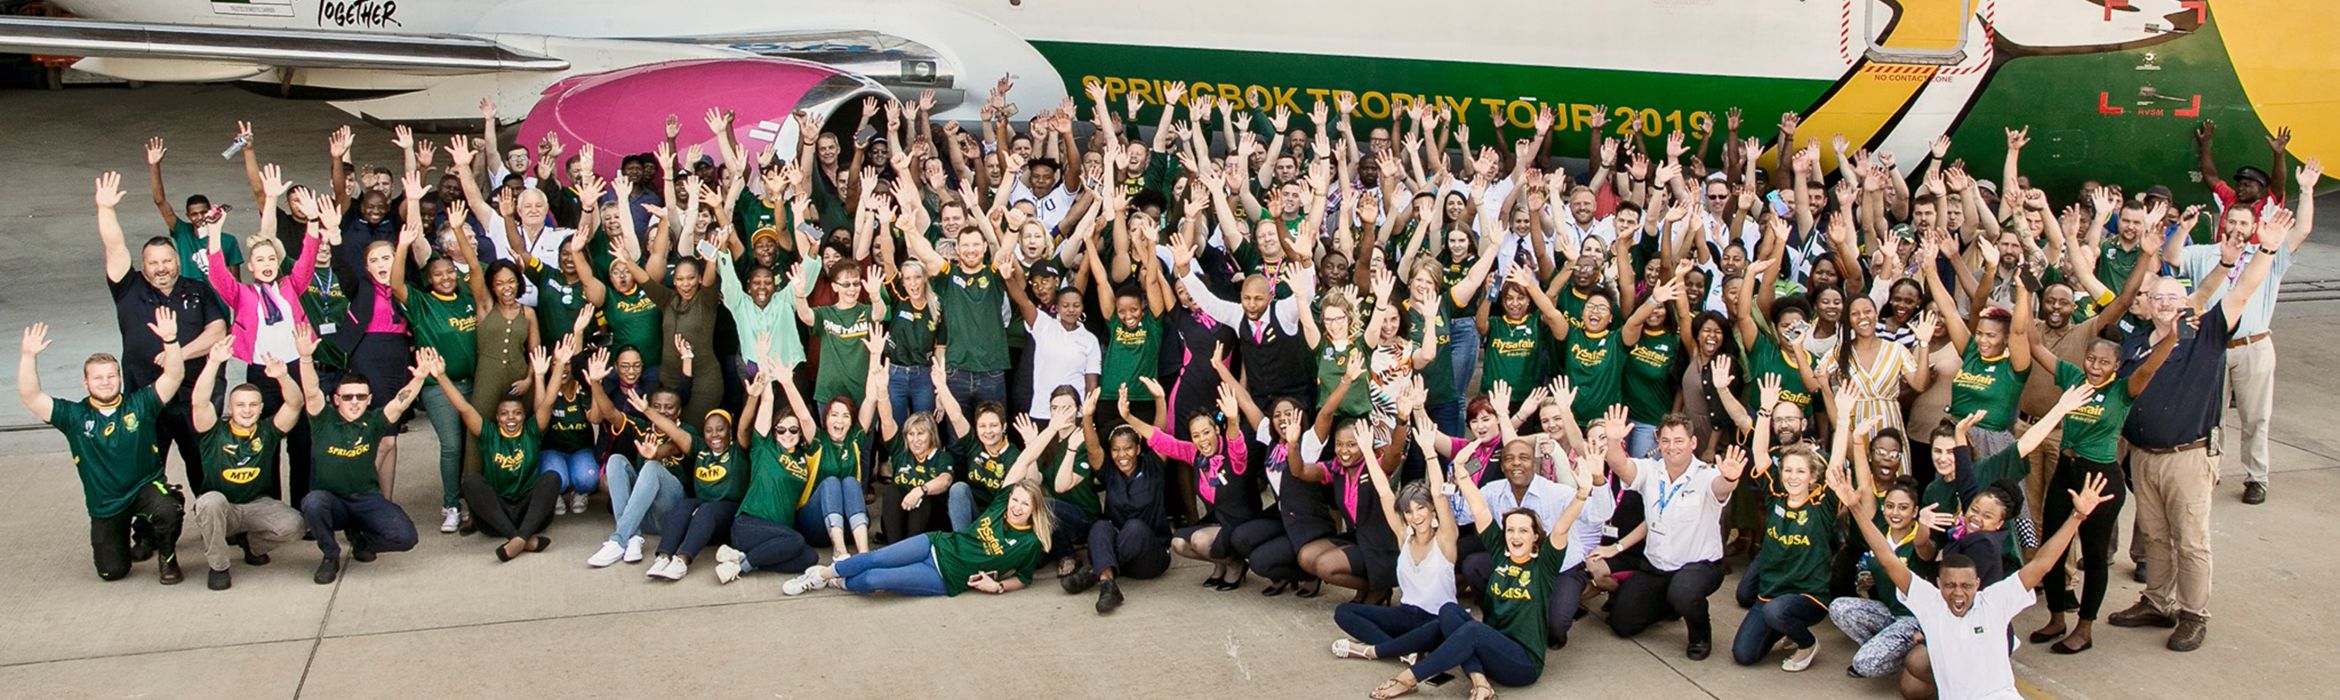 A group of FlySafair staff cheering on the Boks in front of a Springbok branded aircraft